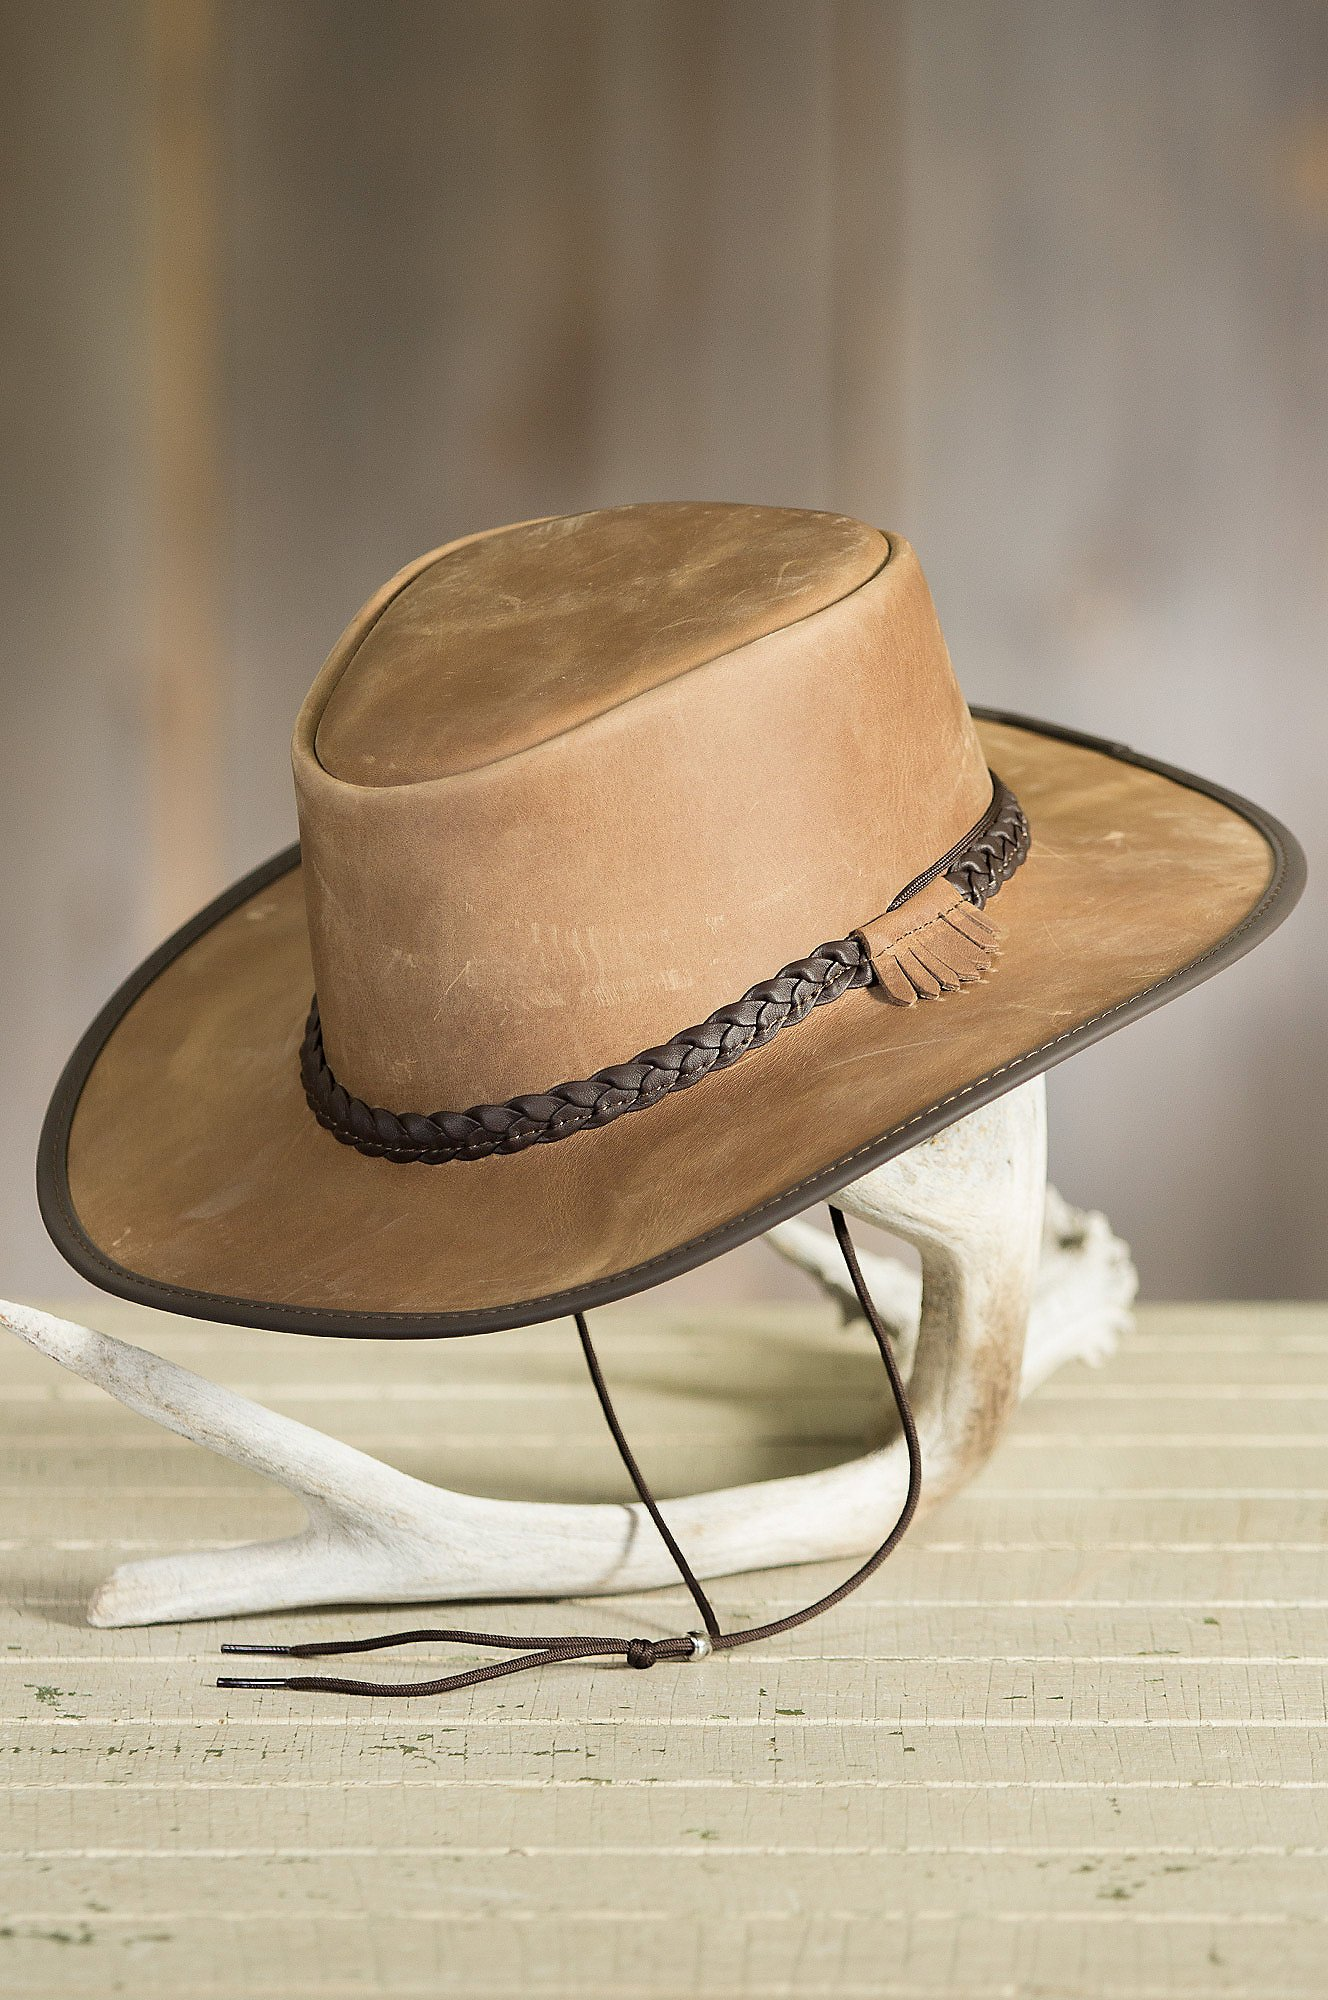 Bravo Leather Cowboy Hat, Pecan, Size XL (7 1/2-7 5/8) by Overland Sheepskin Co (Image #4)